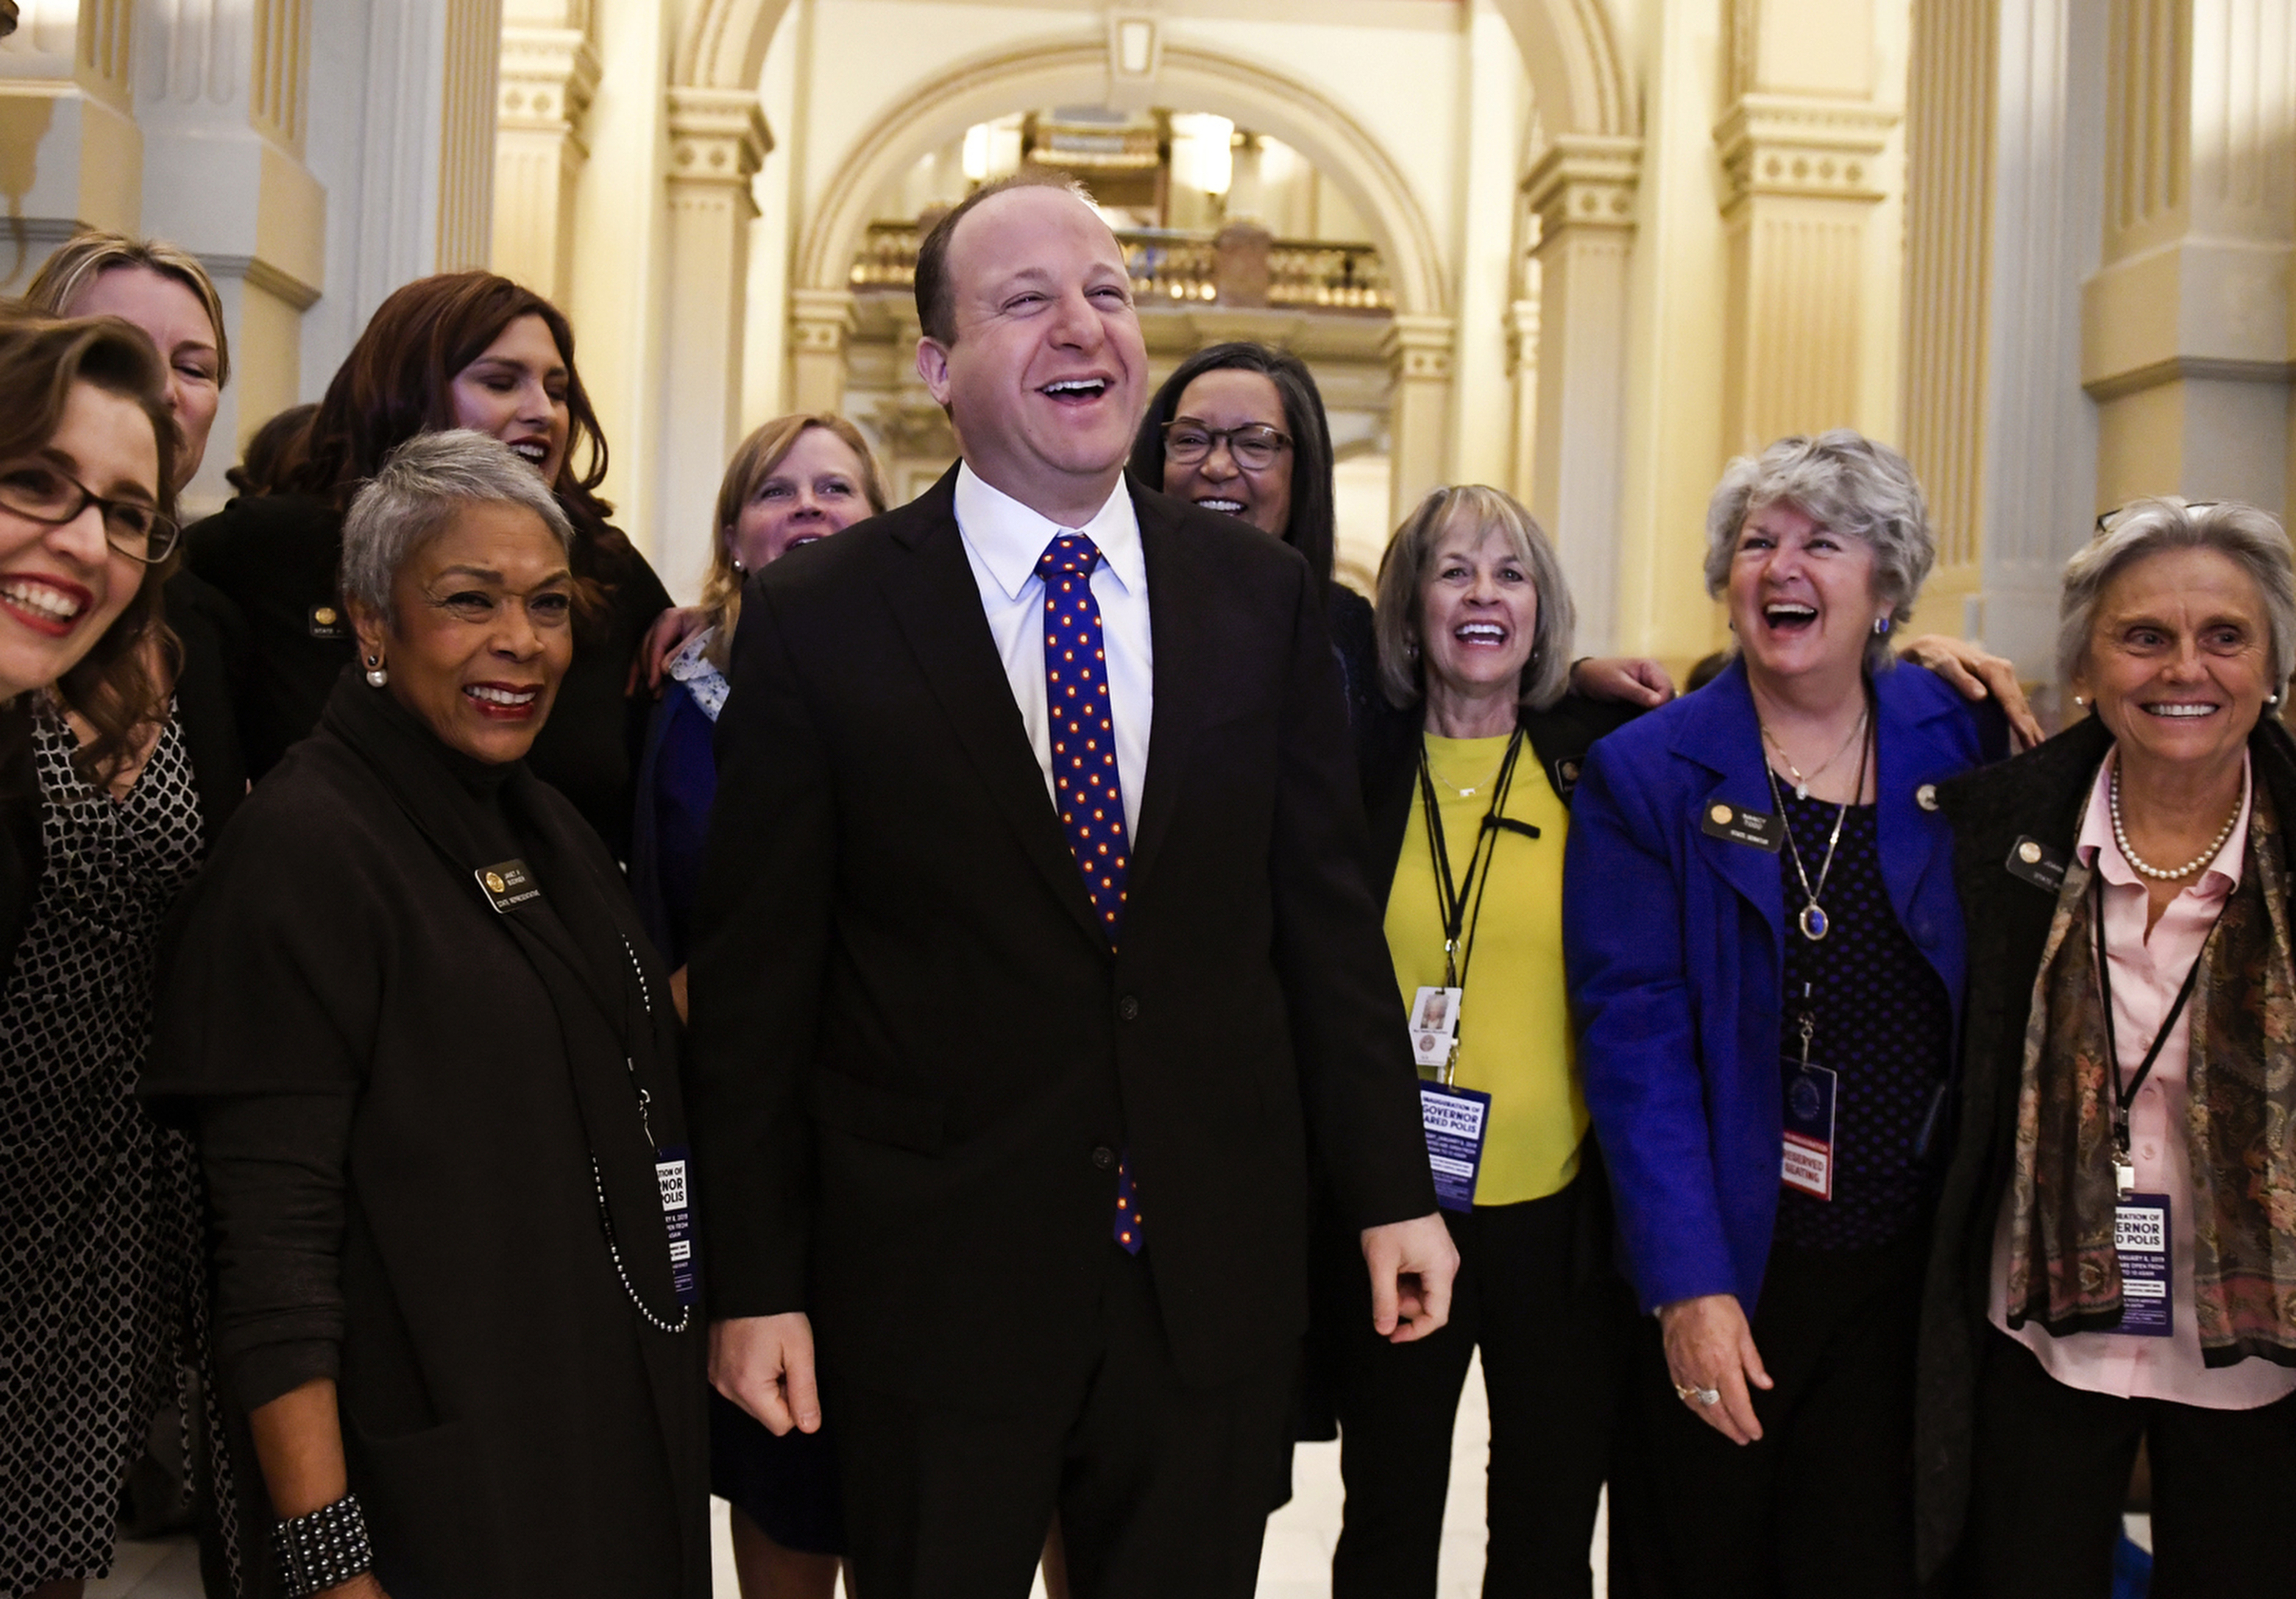 FILE - In this Tuesday, Jan. 8, 2019, file photo, Colorado Governor elect Jared Polis, center, jokes with members of the state house and senate before his inauguration at the Colorado State Capitol in Denver. Health care proposals are among the first actions for some new Democratic governors and Democratically controlled legislatures. Expanding access to care was a rallying point for the party in the 2018 elections.   (AAron Ontiveroz/The Denver Post via AP, File)